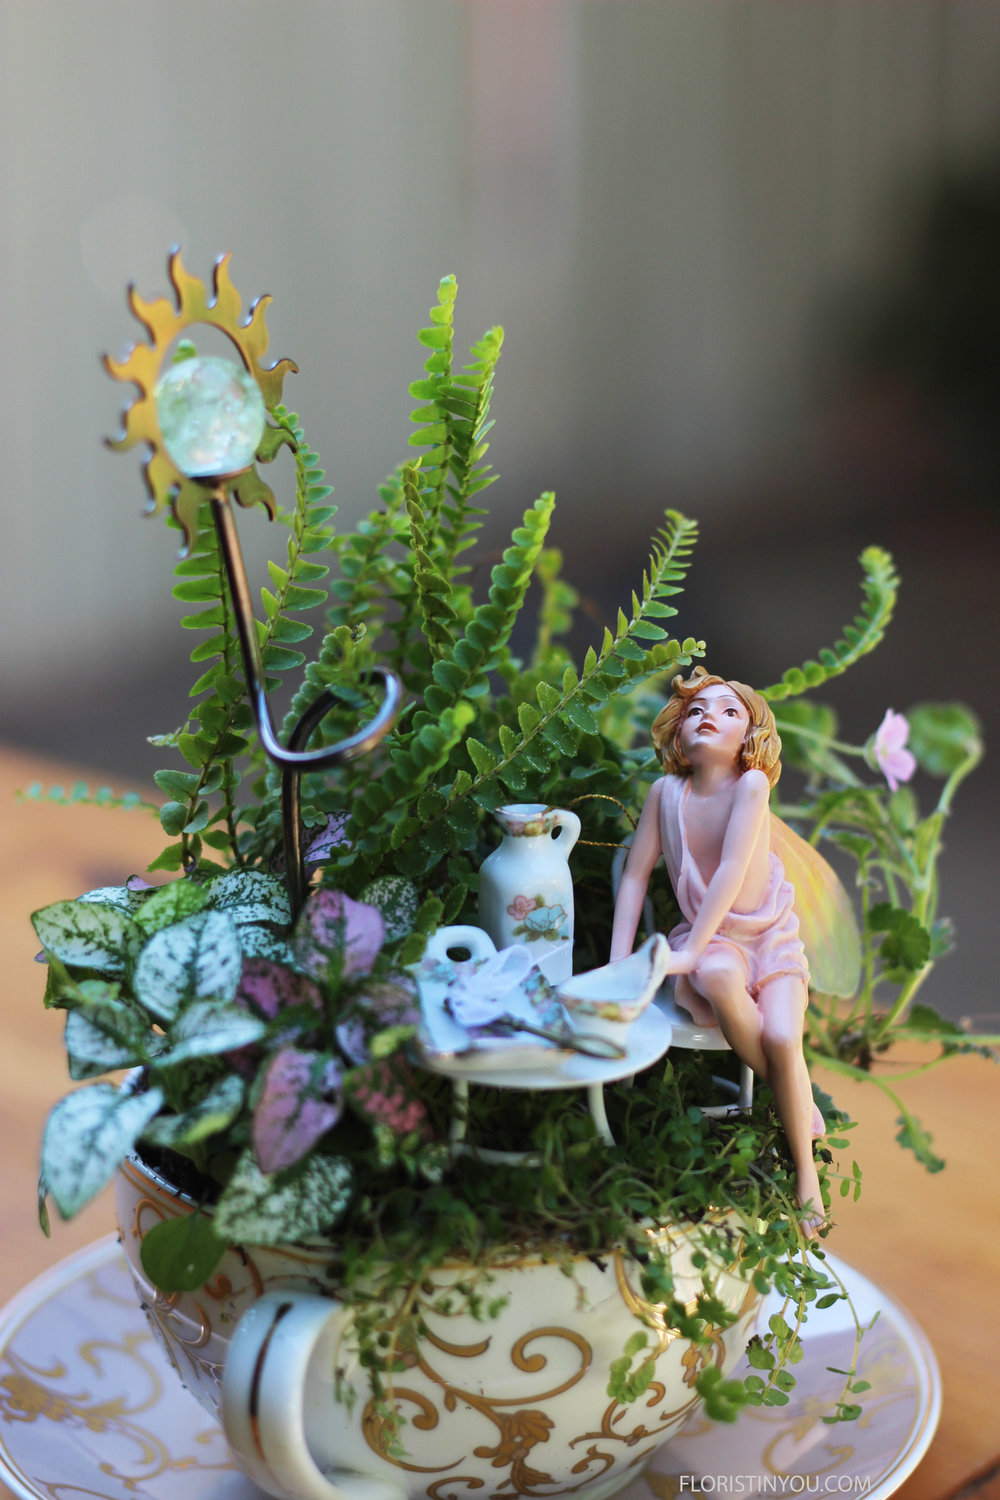 Place clay under fairy and push onto the seat of the chair so she won't fall.  The fairies are delicate and can break.